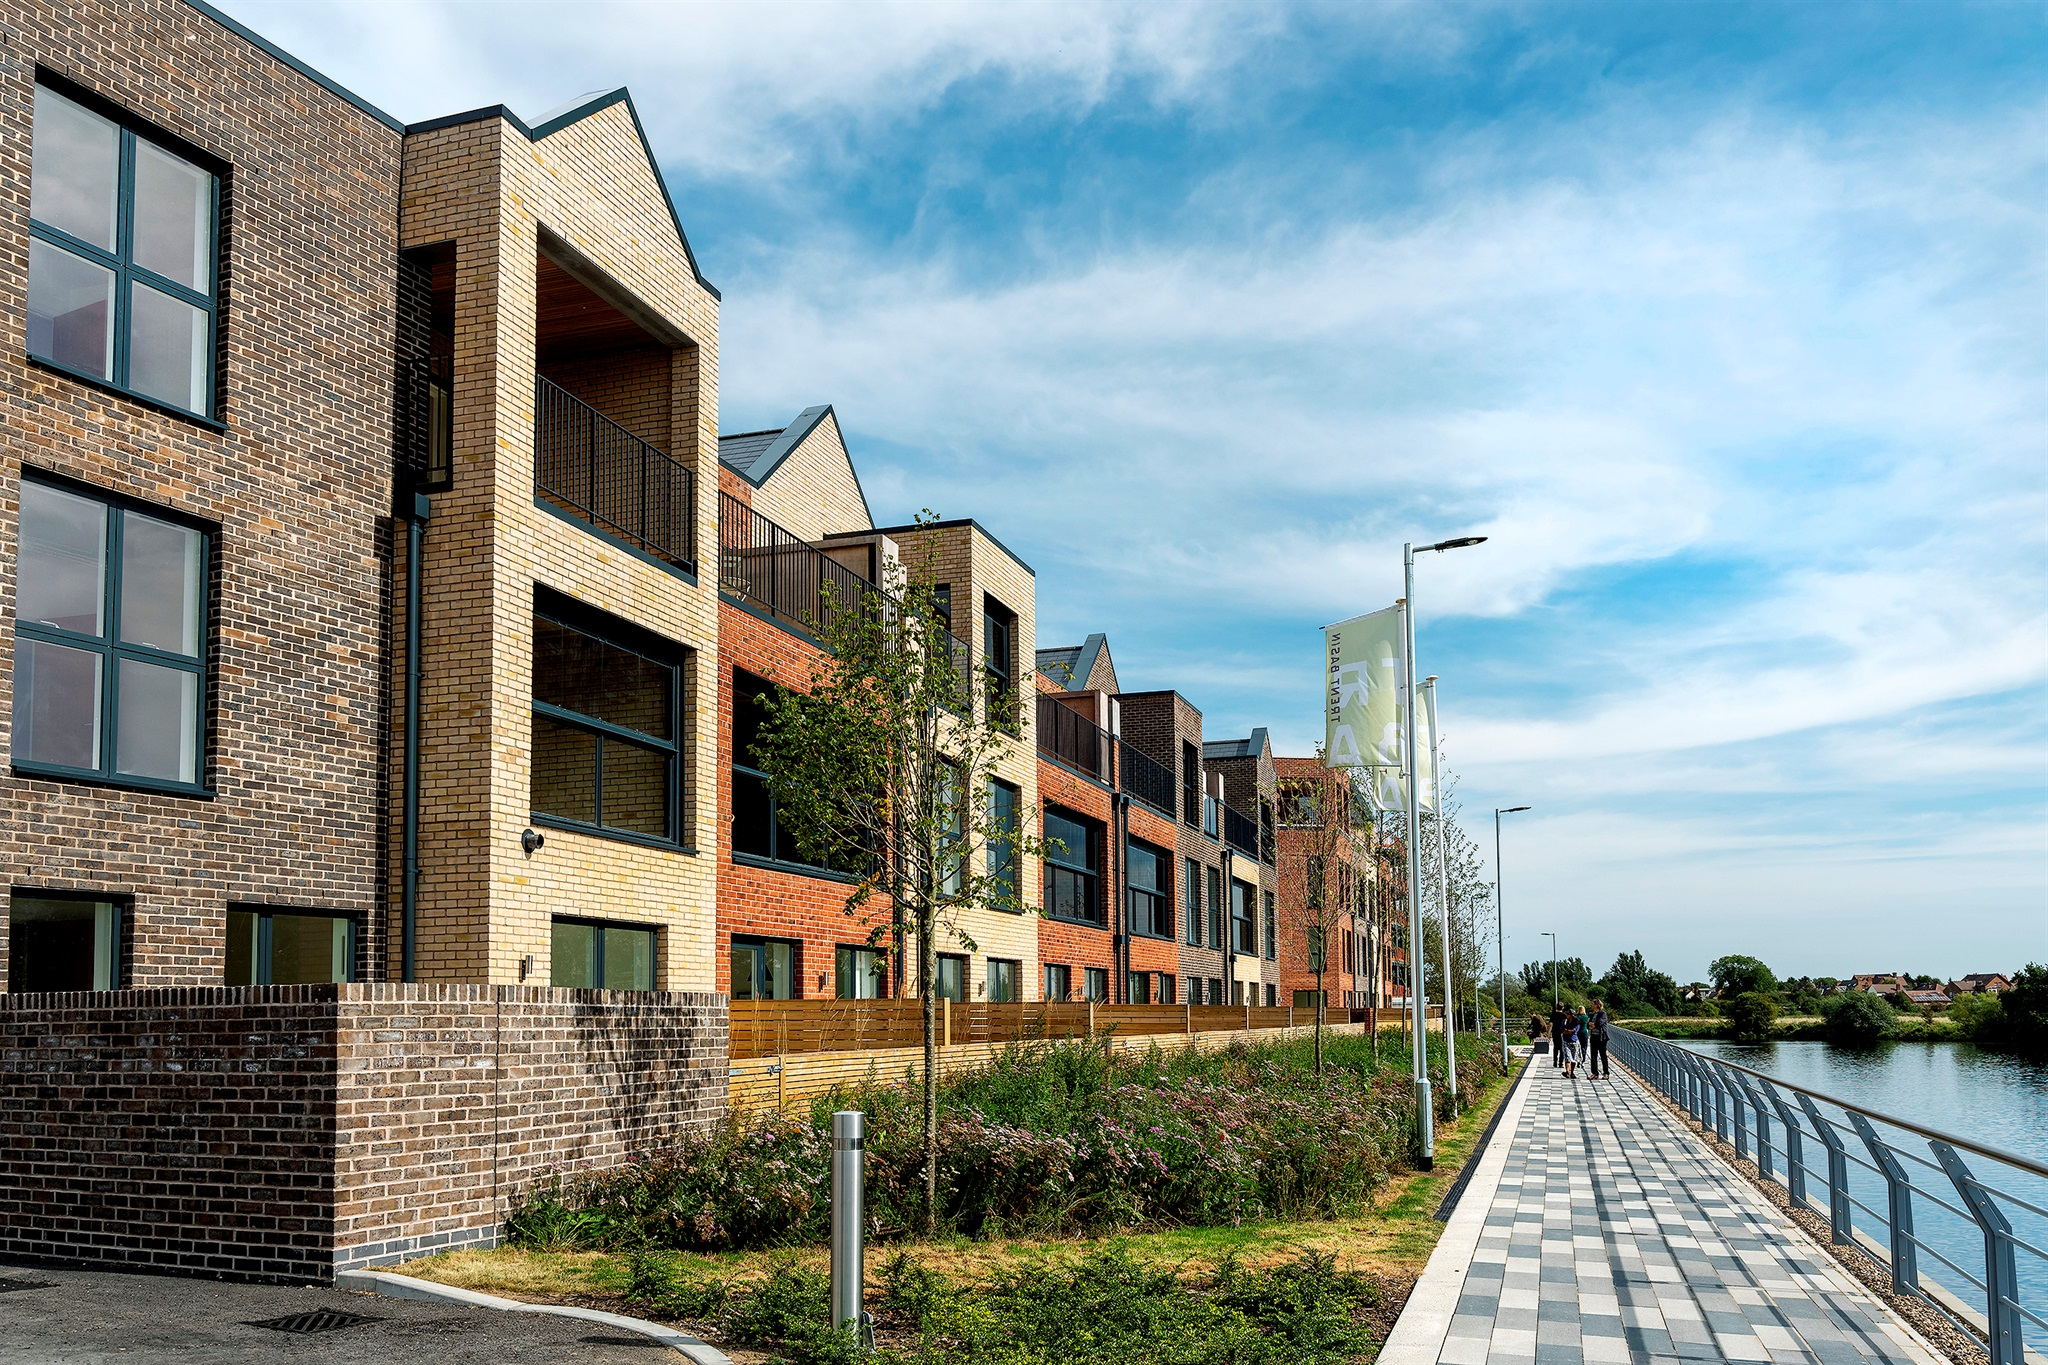 Phase Three Homes Now Available To Purchase at Trent Basin Development